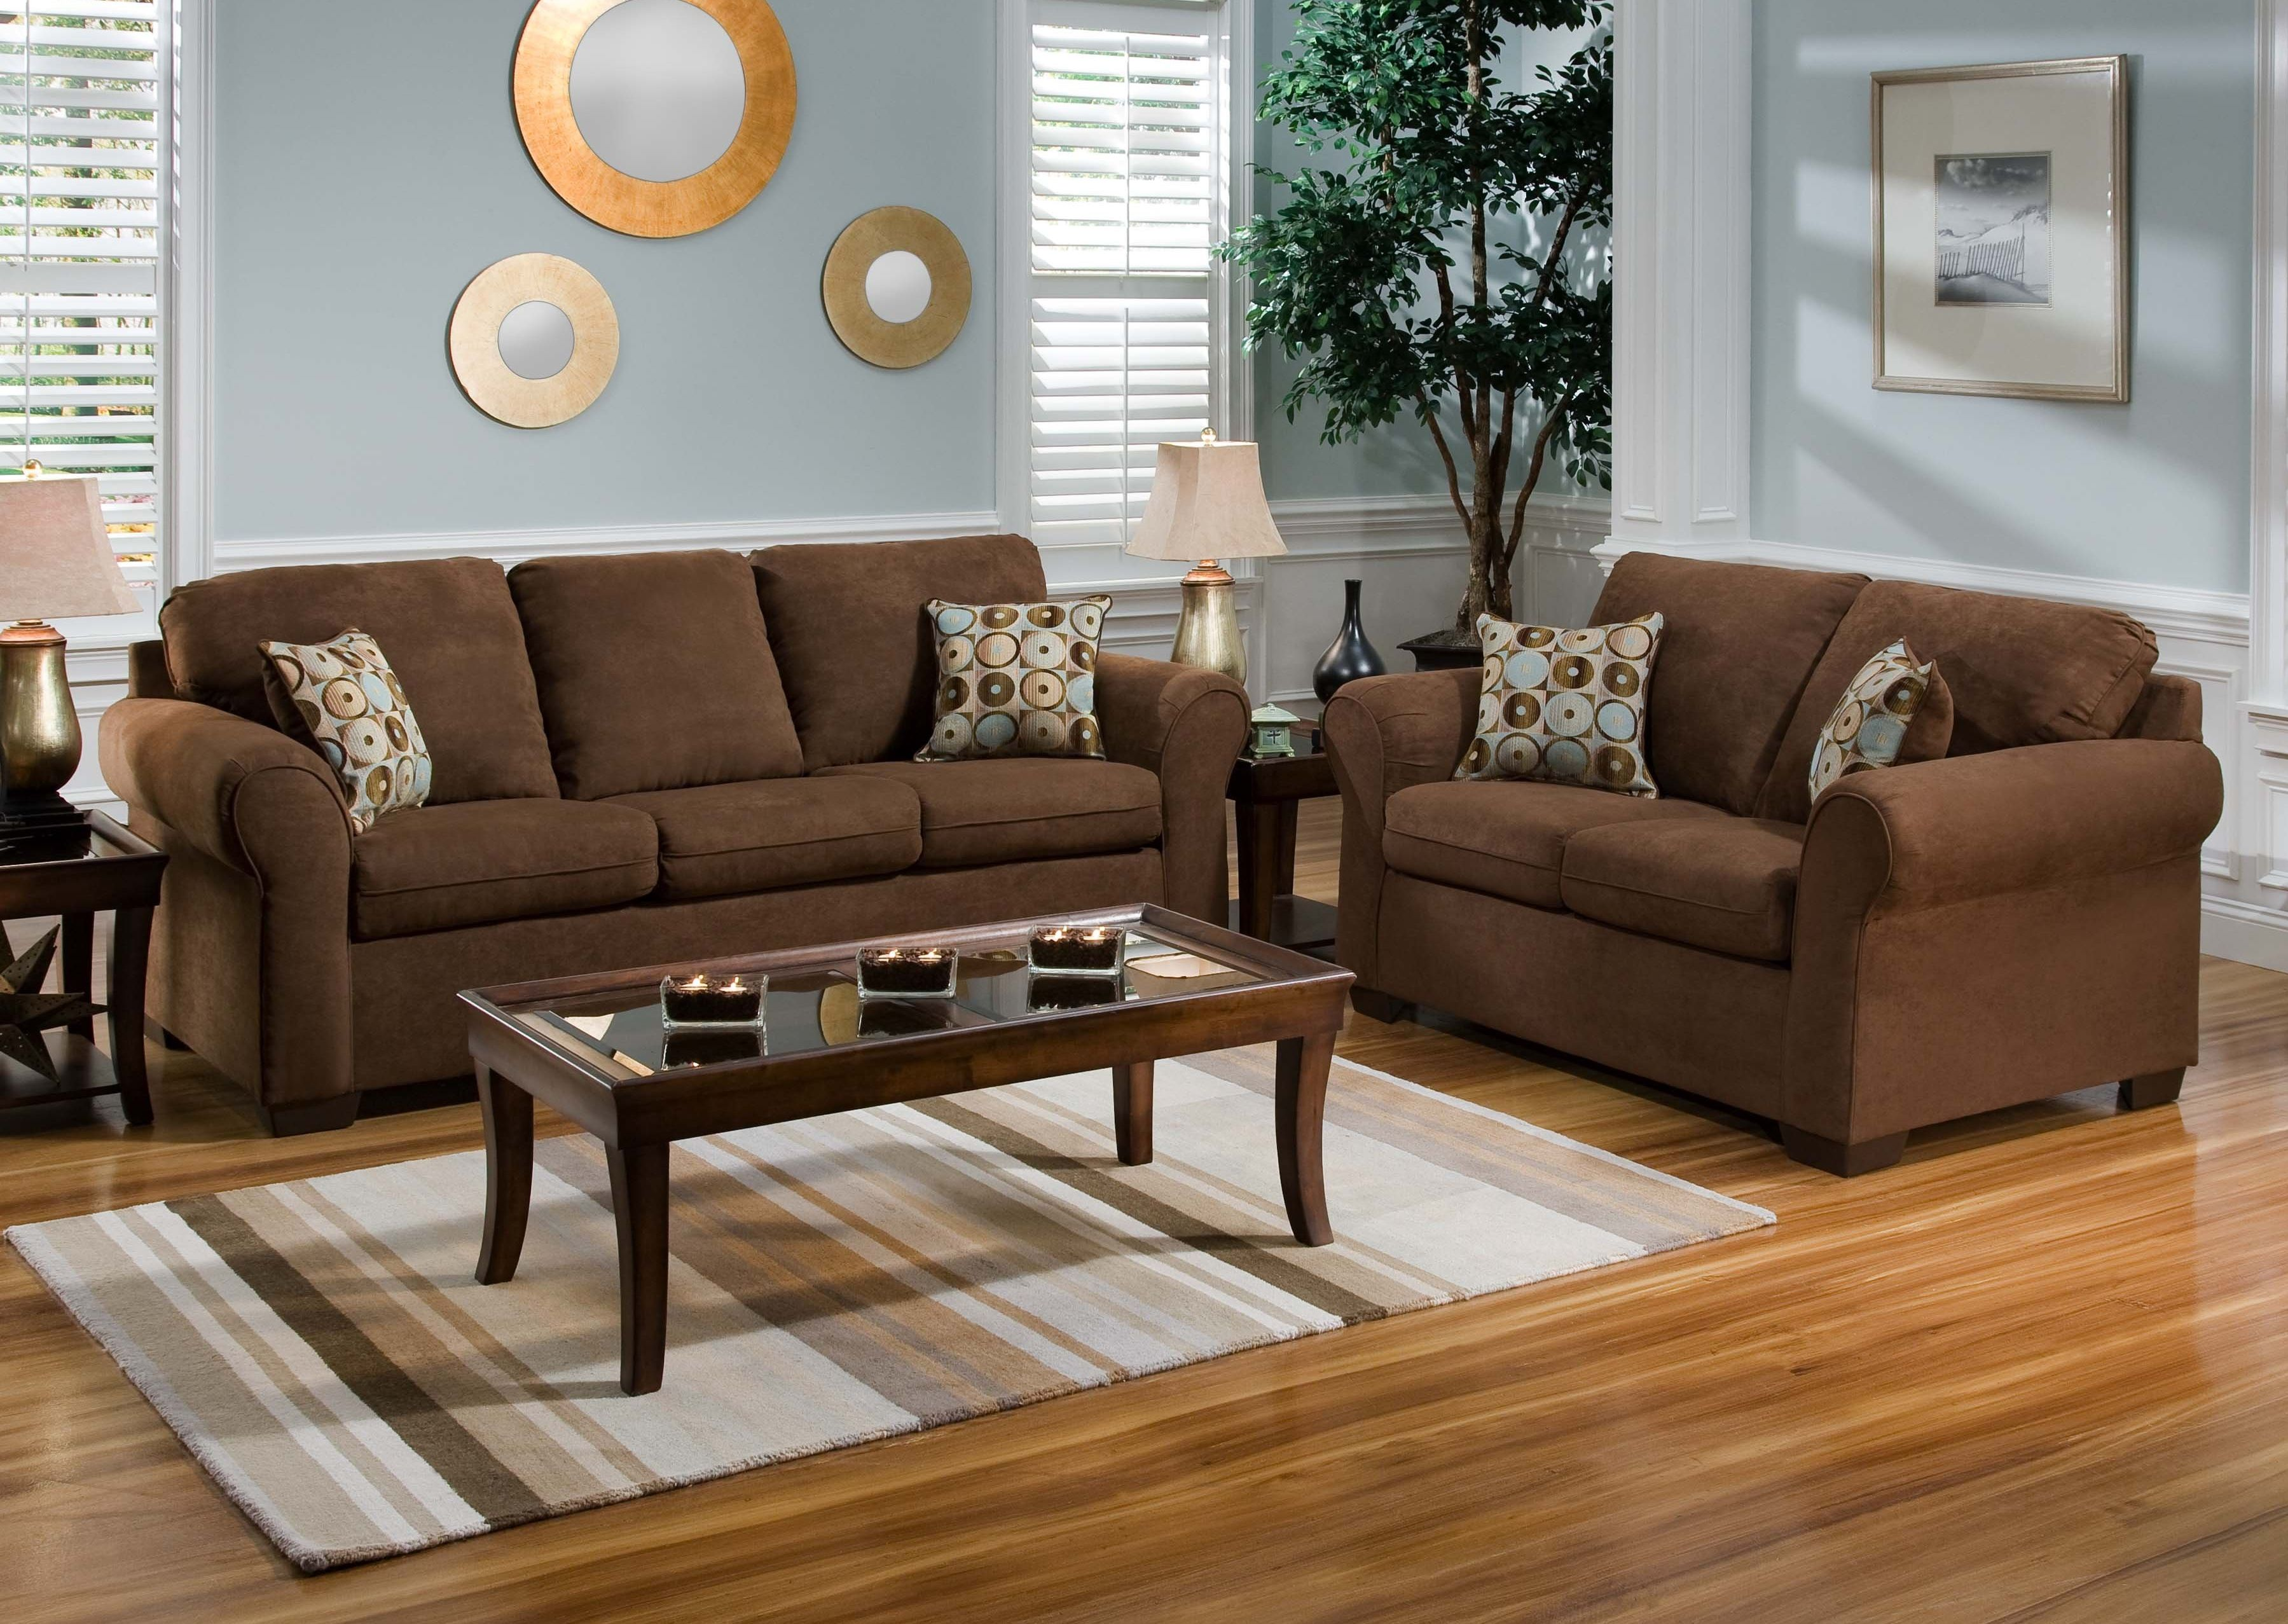 gray palm of go pin home sectional pc sectionals furniture rooms to crawford cindy picture from springs